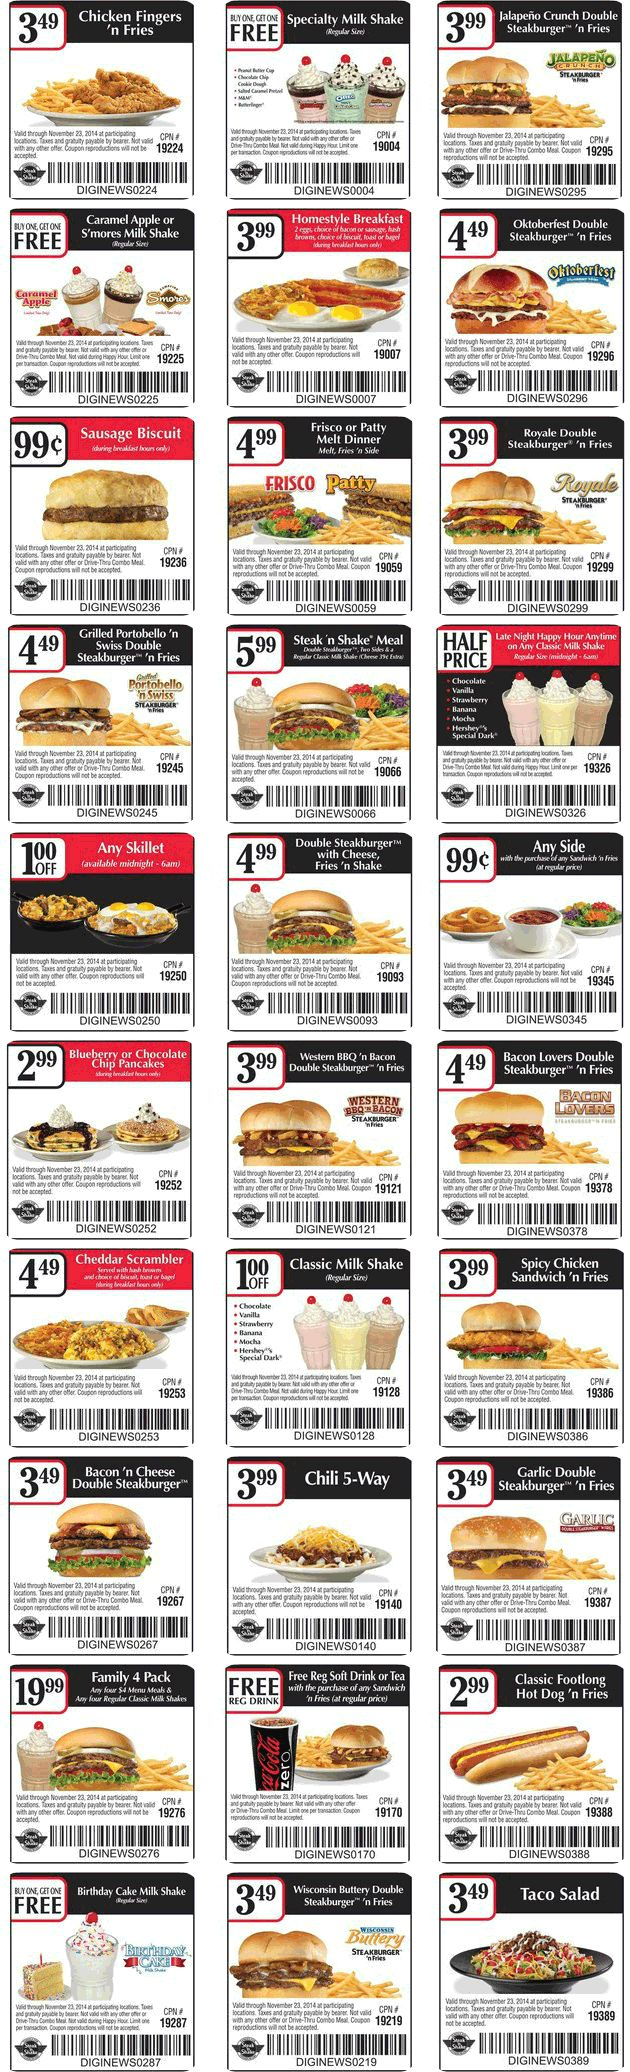 Pinned October 15th: Second shake free & more at #Steak N Shake #coupon via The #Coupons App